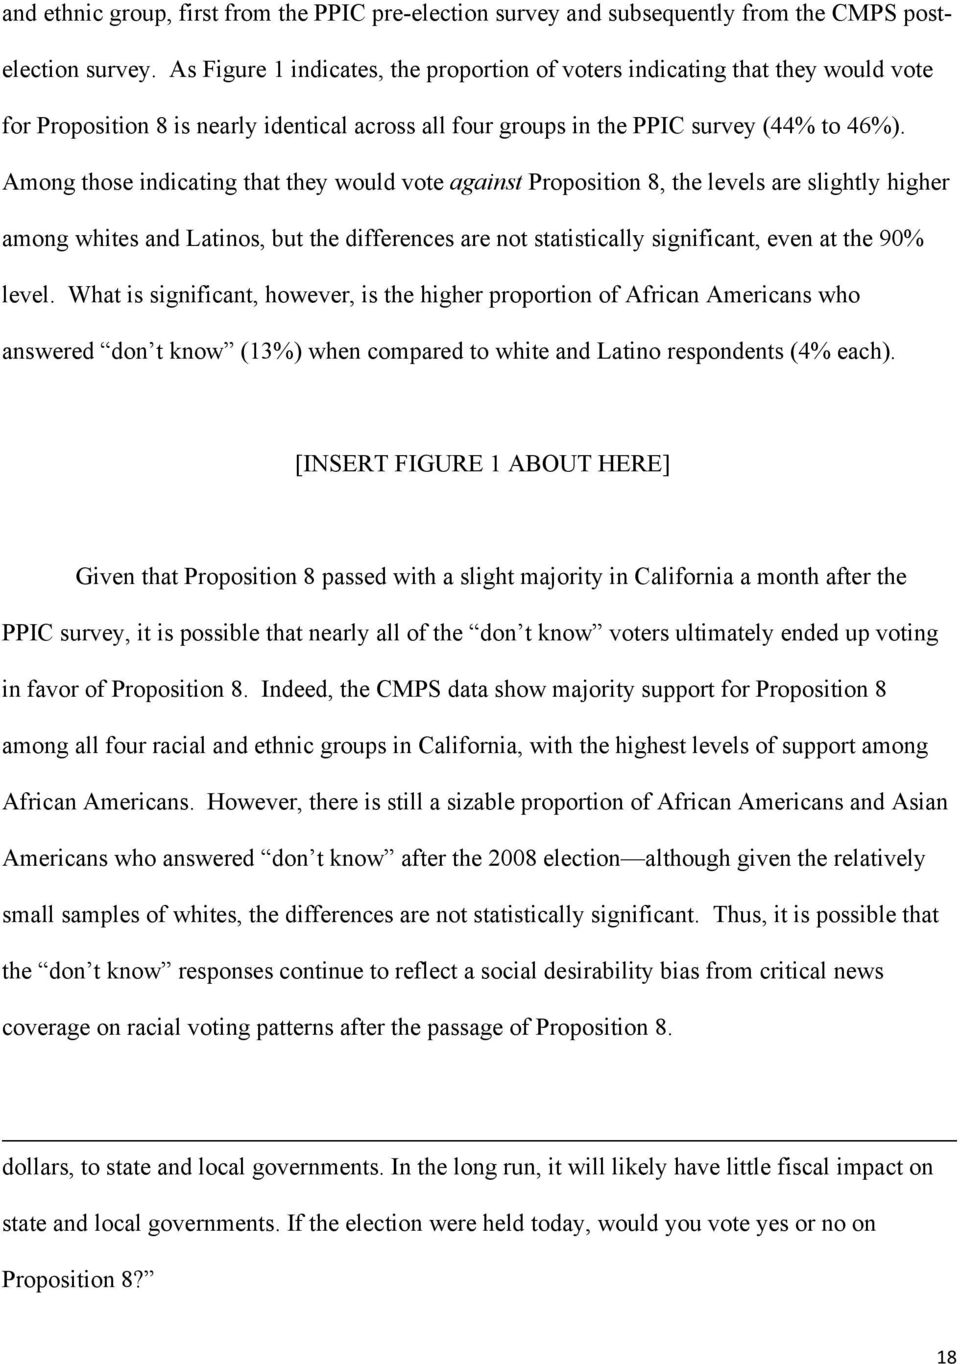 Among those indicating that they would vote against Proposition 8, the levels are slightly higher among whites and Latinos, but the differences are not statistically significant, even at the 90%